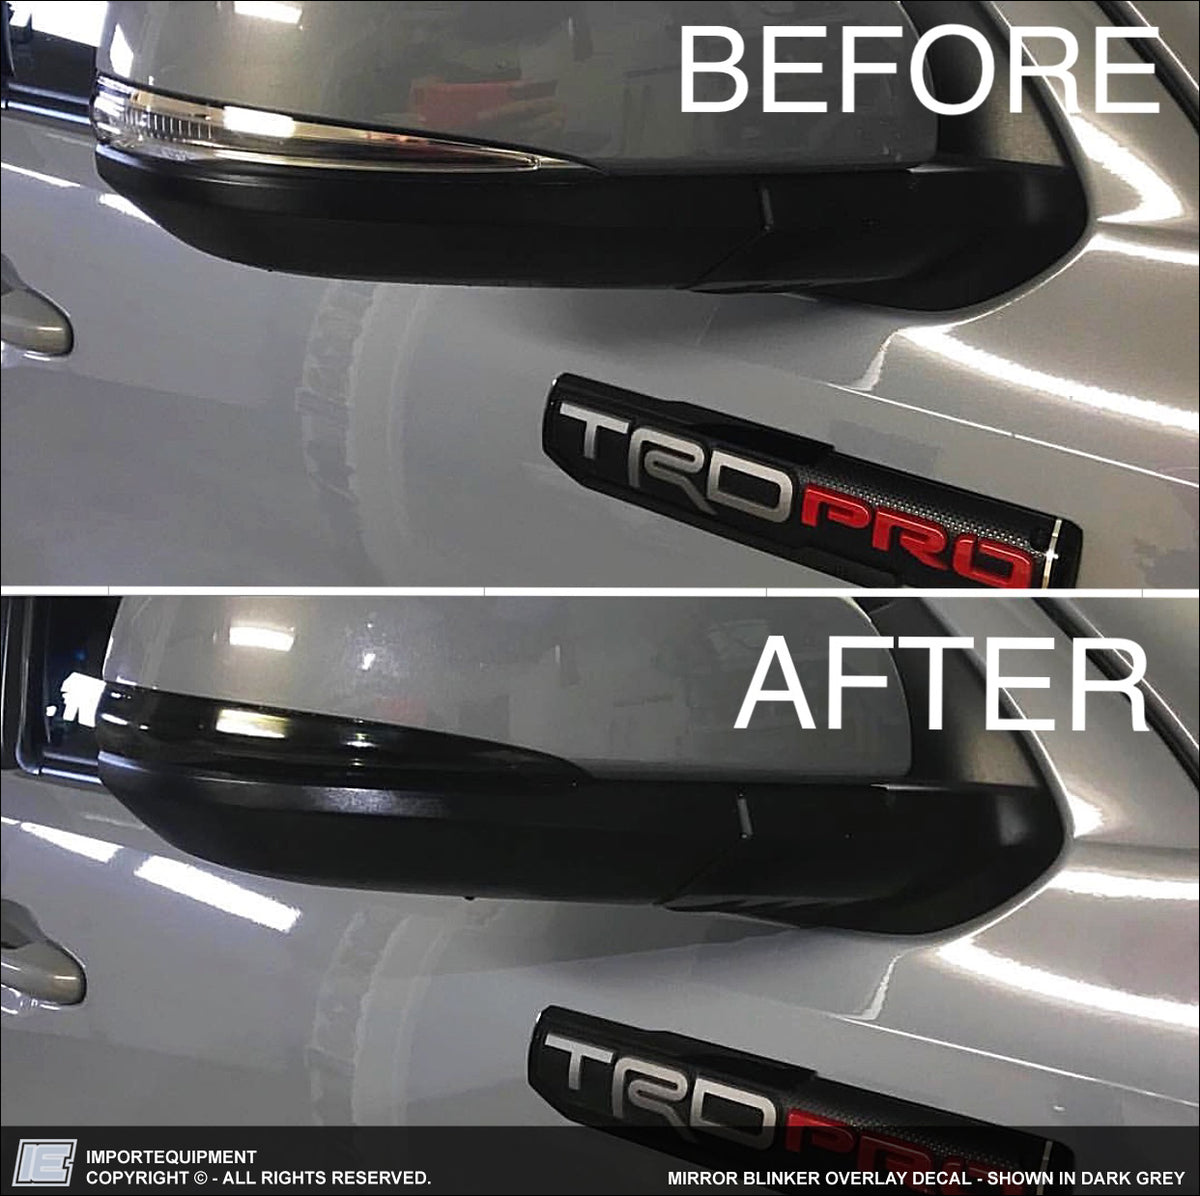 Mirror Blinker Overlay Decal Importequipment